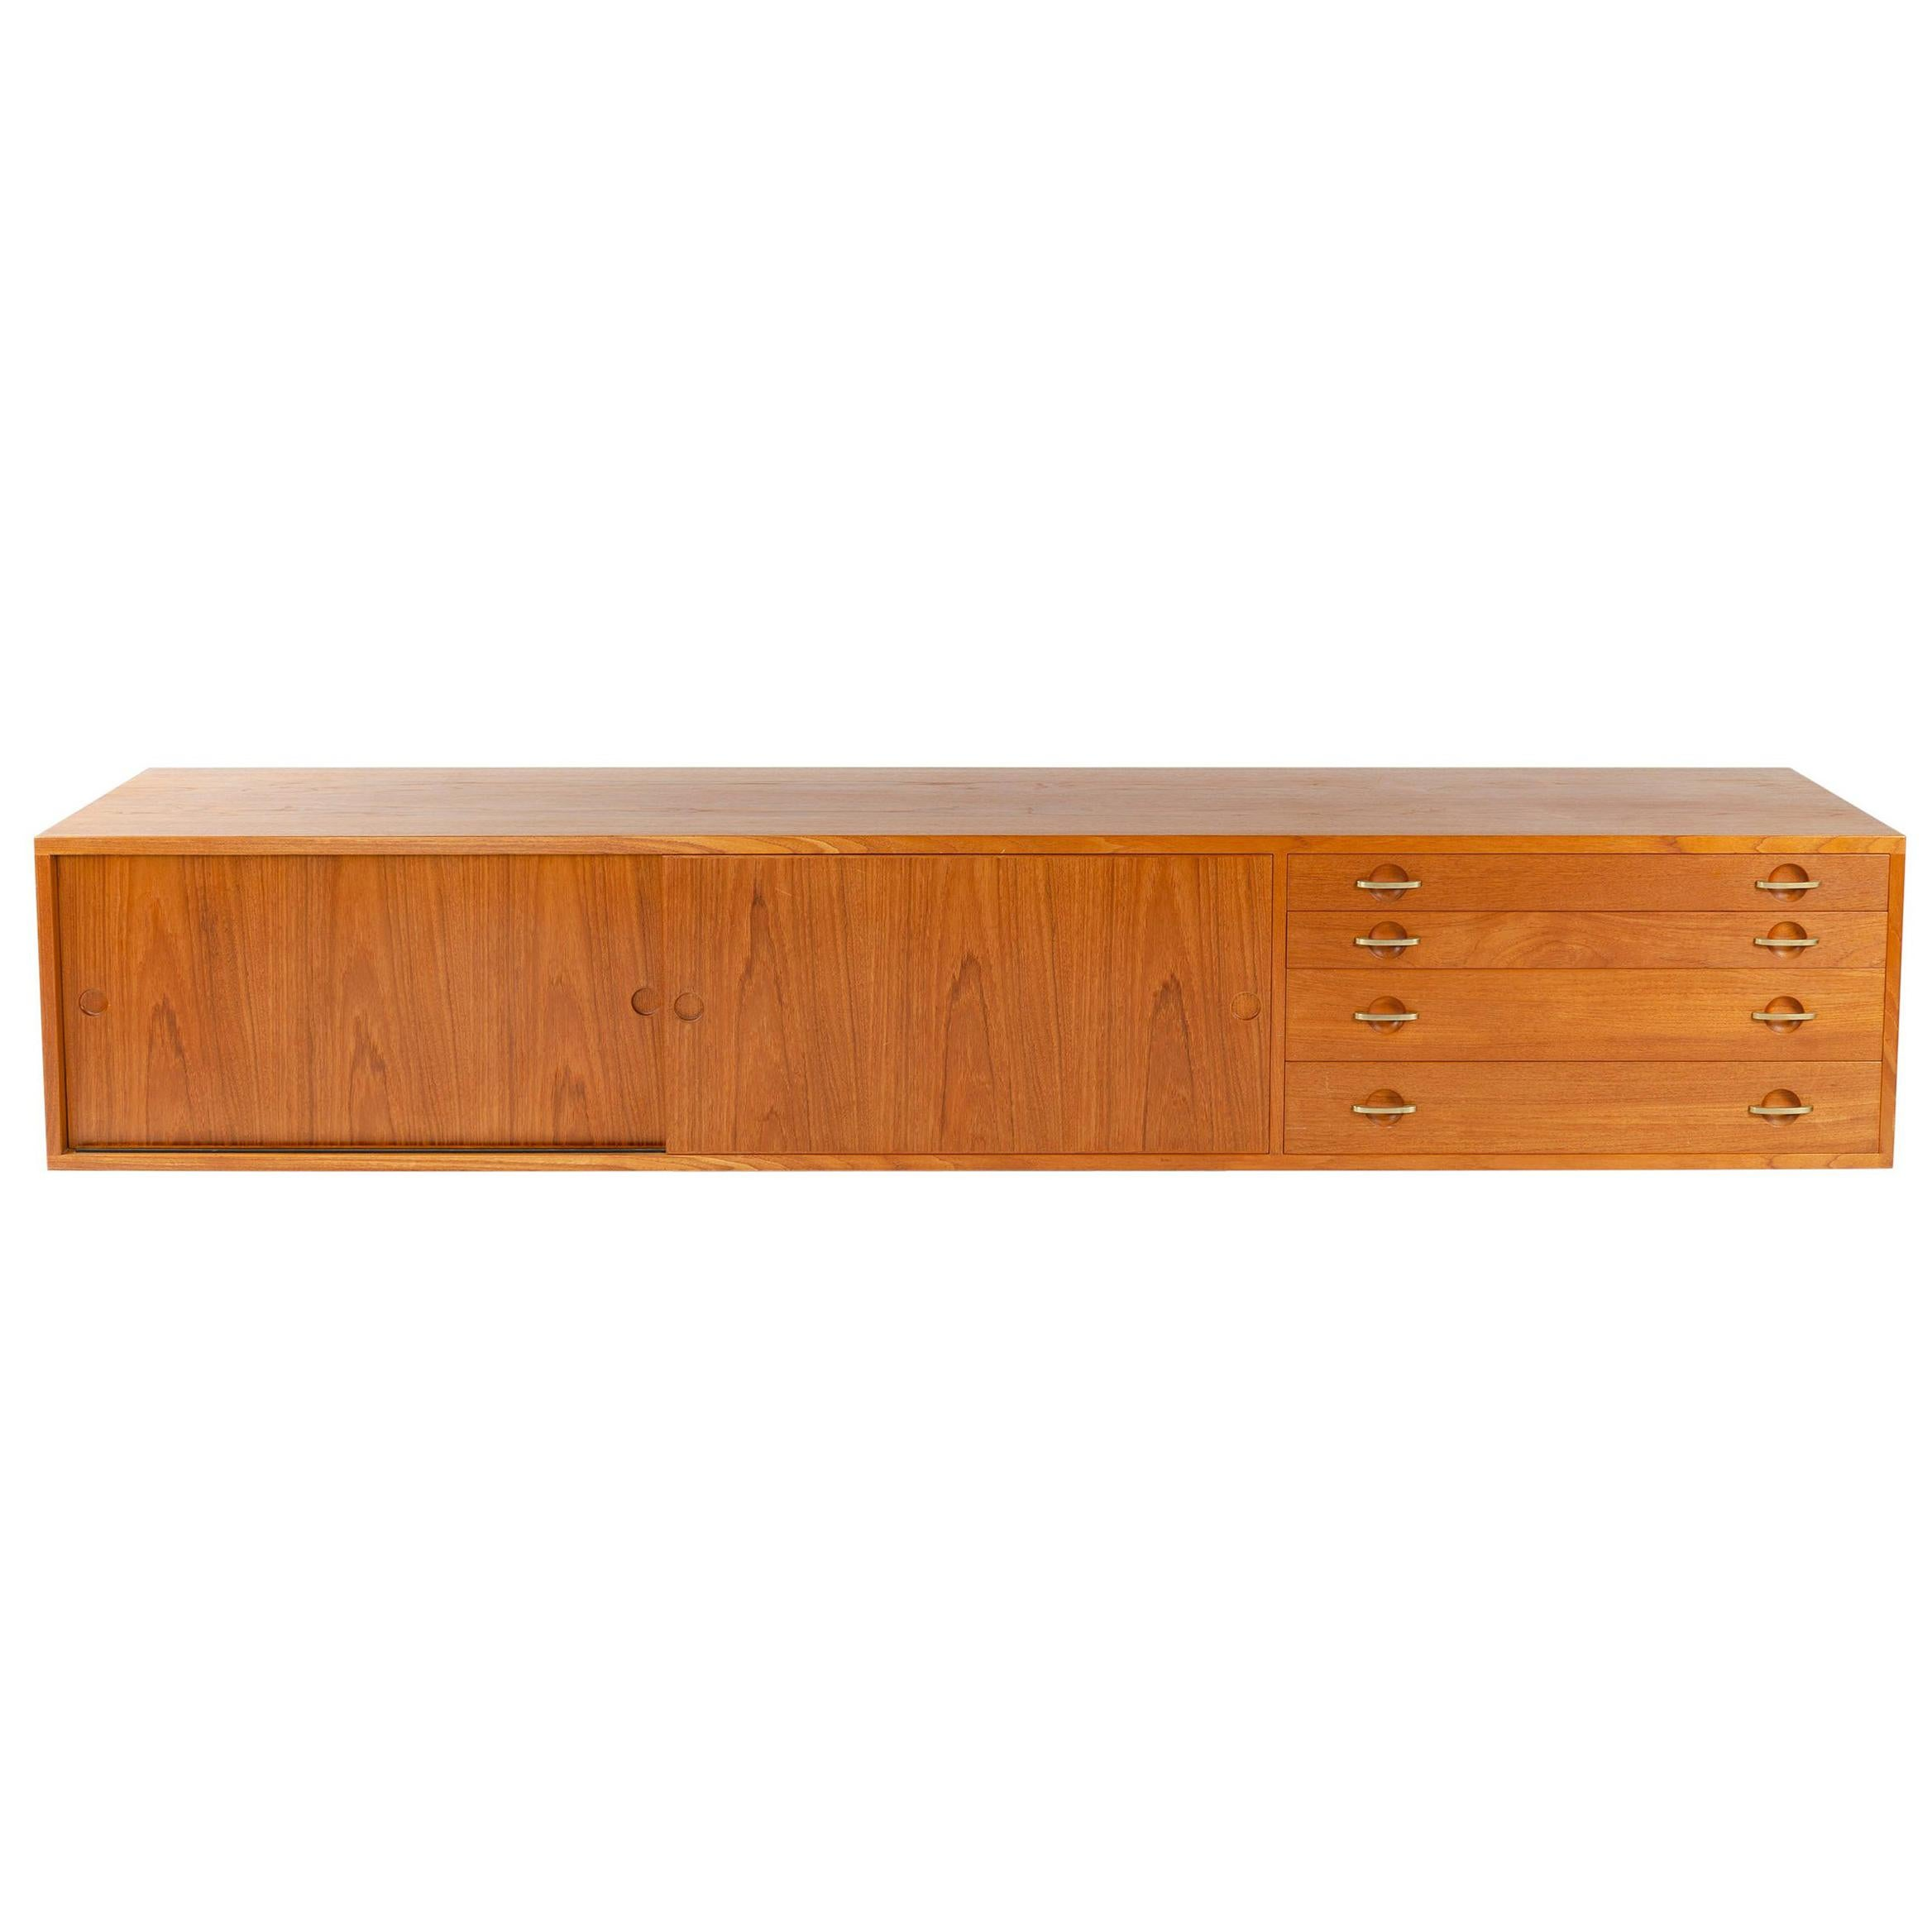 Rare Wall Mount Teak Credenza by Hans J. Wegner for Johannes Hansen Made in 1952